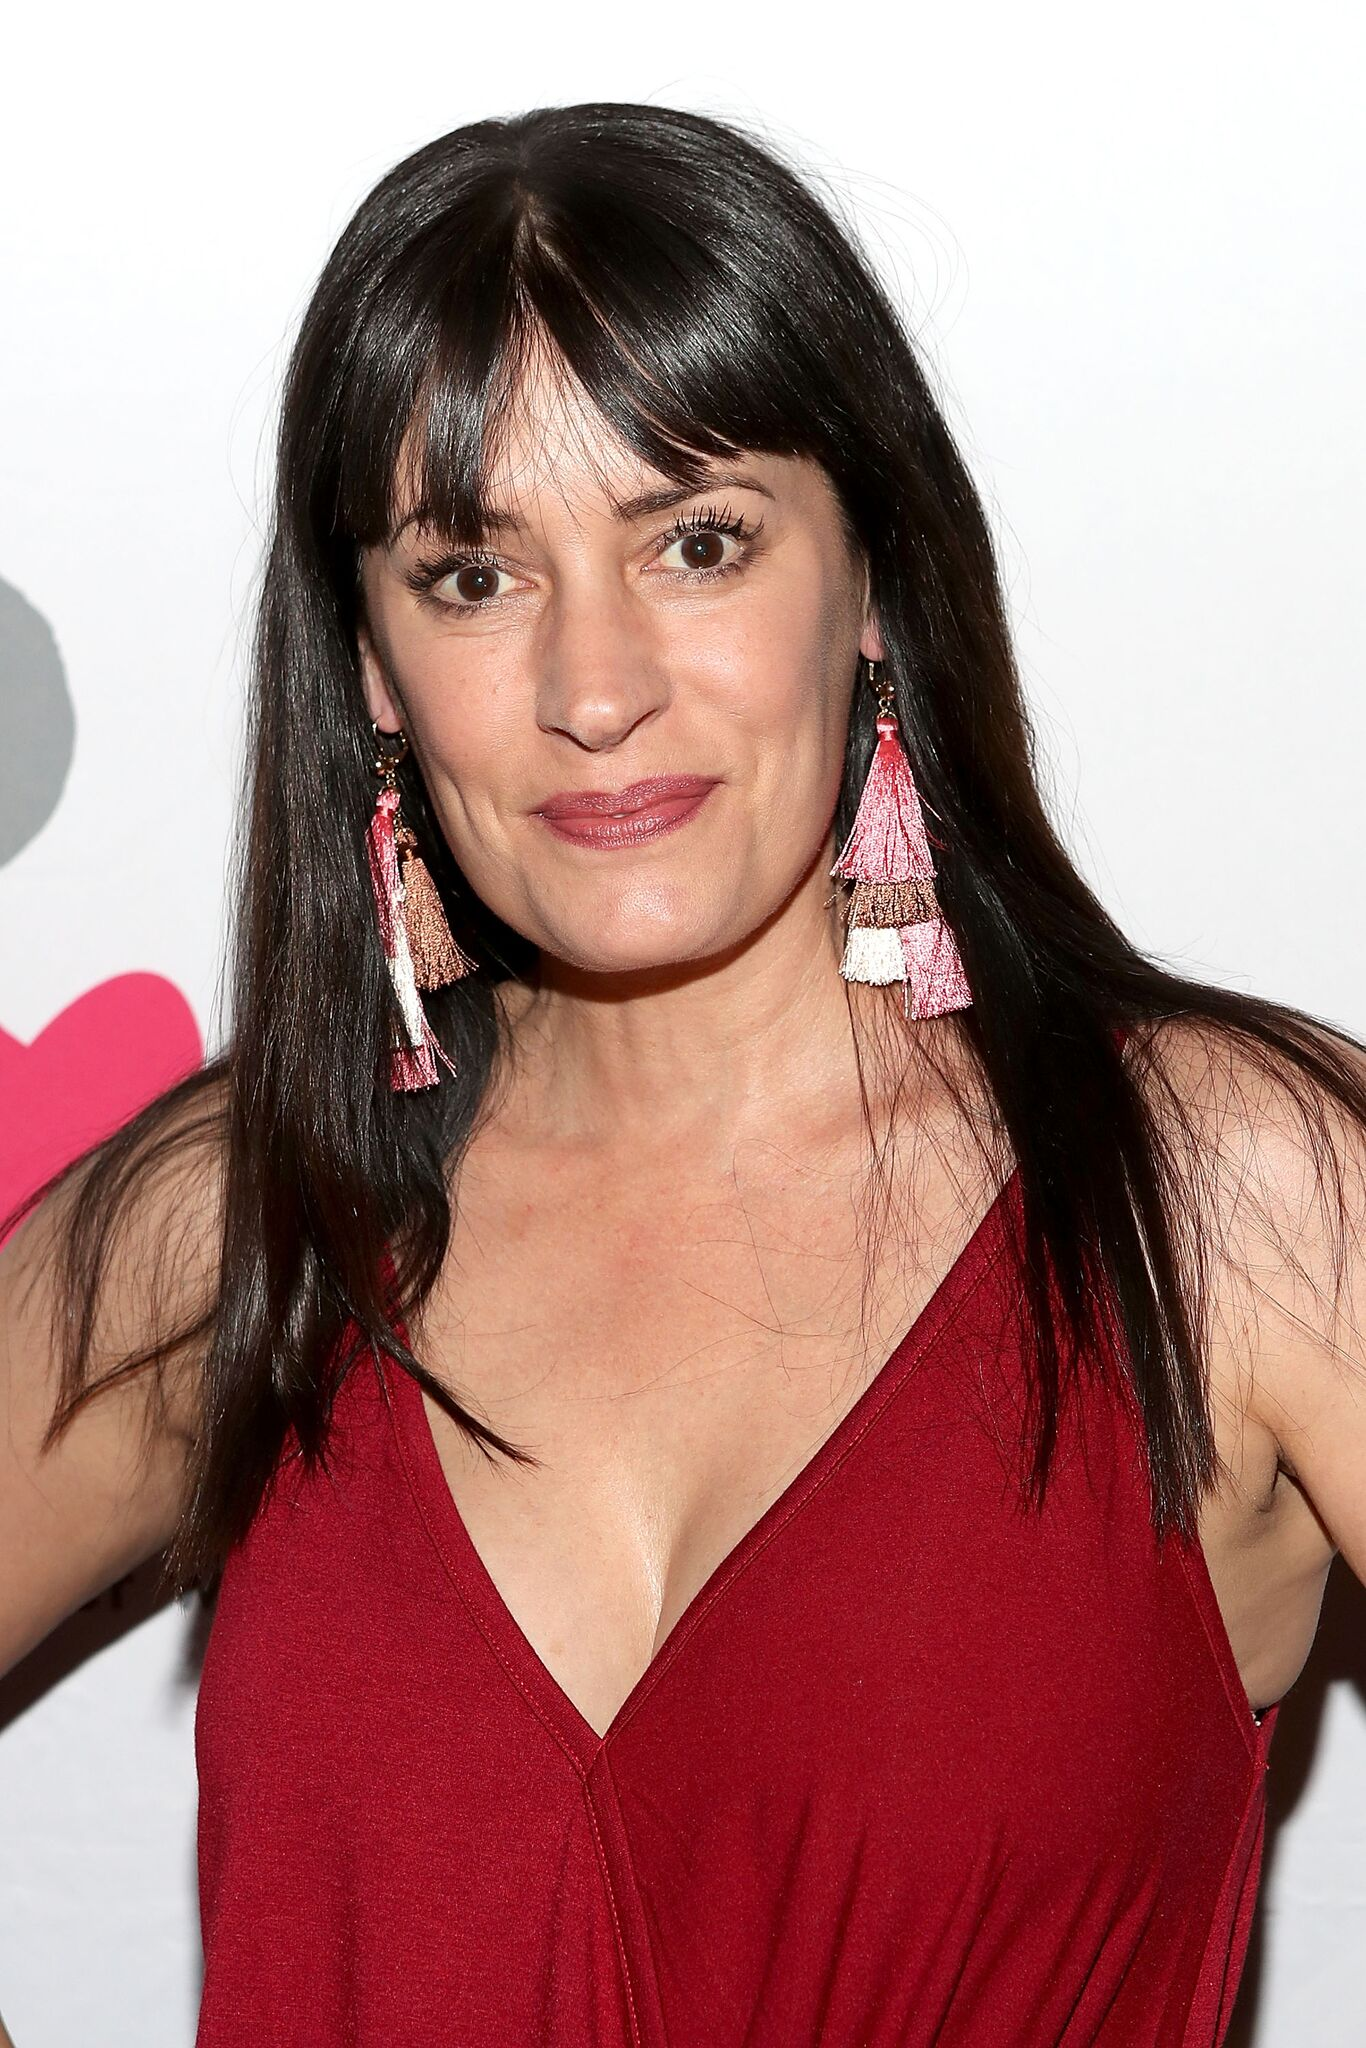 Paget Brewster attends Pablove Foundation Benefit at Largo At The Coronet | Getty Images